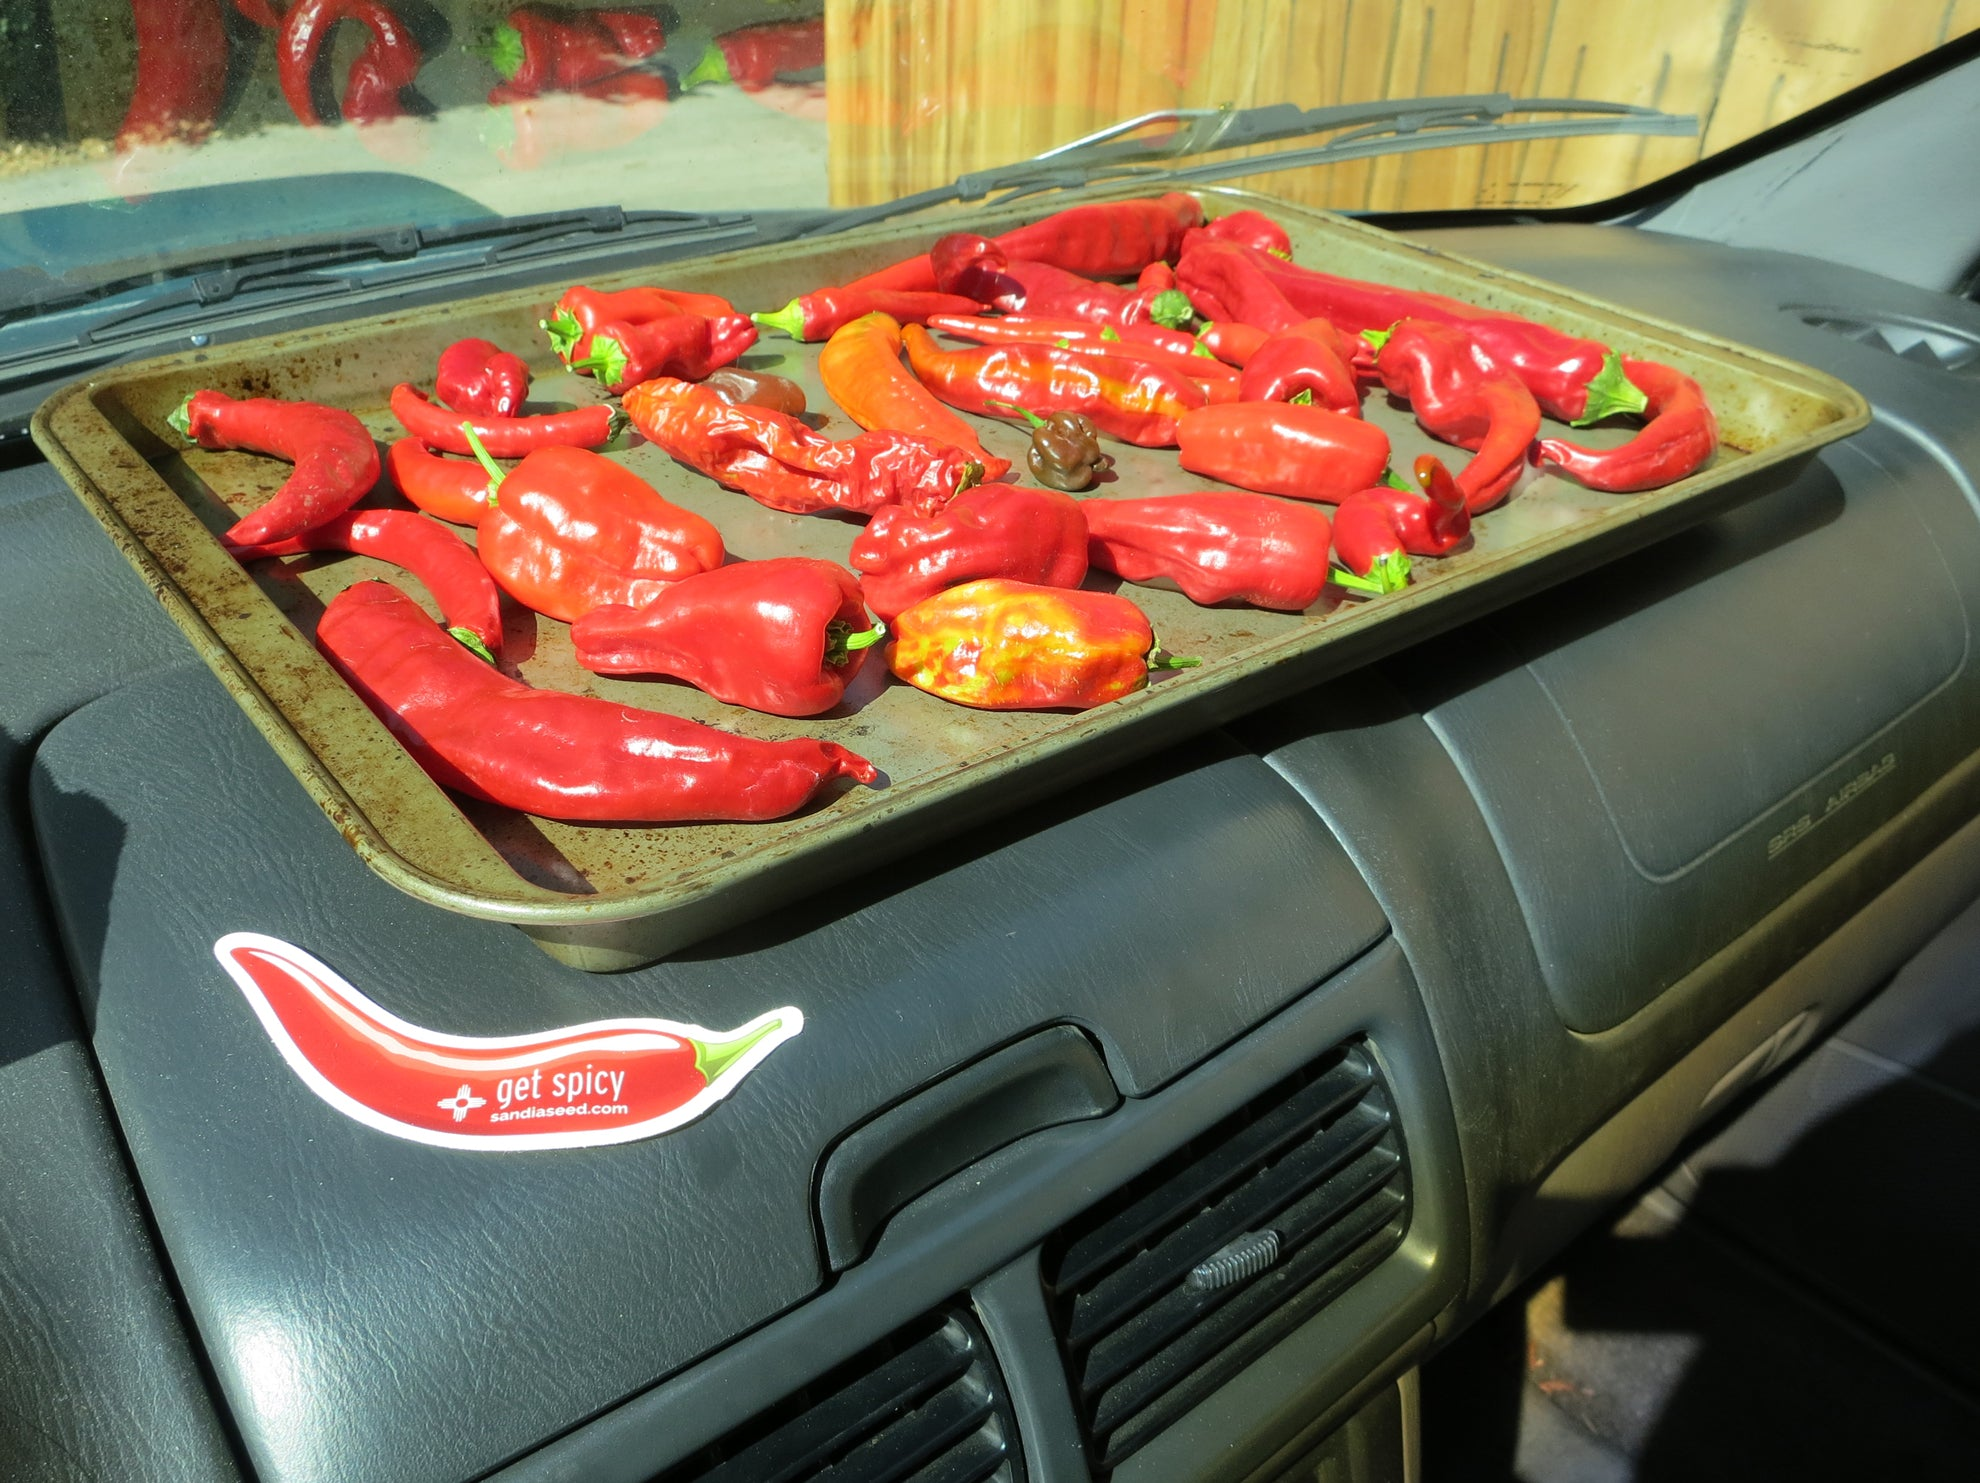 How to Dry out your chile peppers - dry them in your hot car!